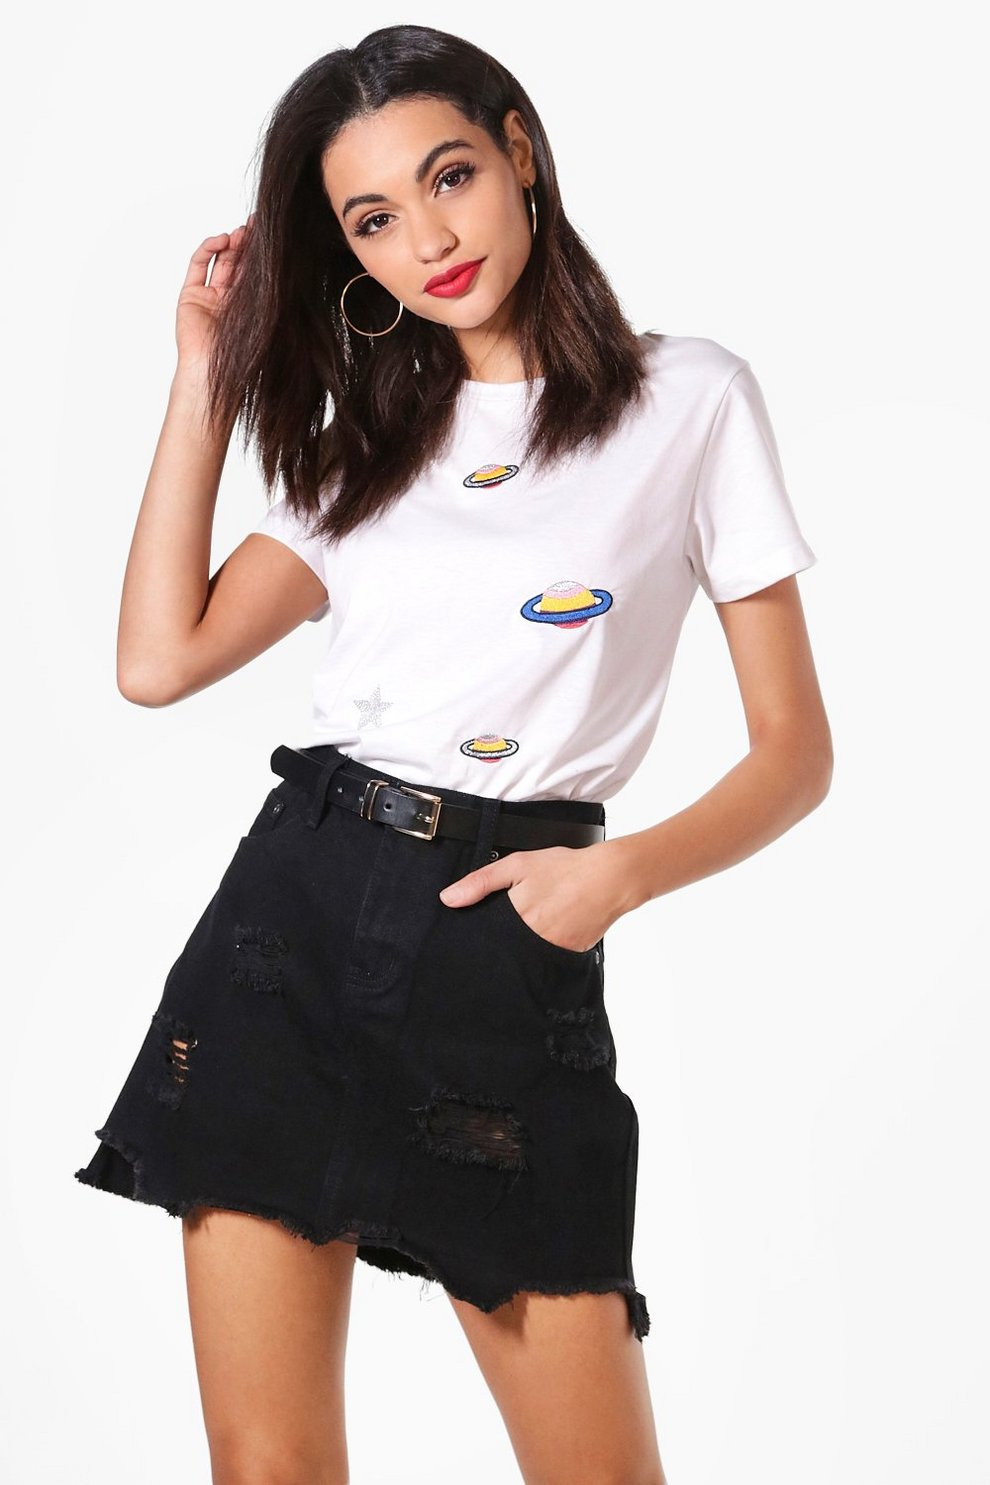 Boohoo Ripped Hem Denim Mini Skirt Clearance Footlocker Cheap Sale Get Authentic Cheap With Credit Card Cheap Price wi0Ihdq9ud